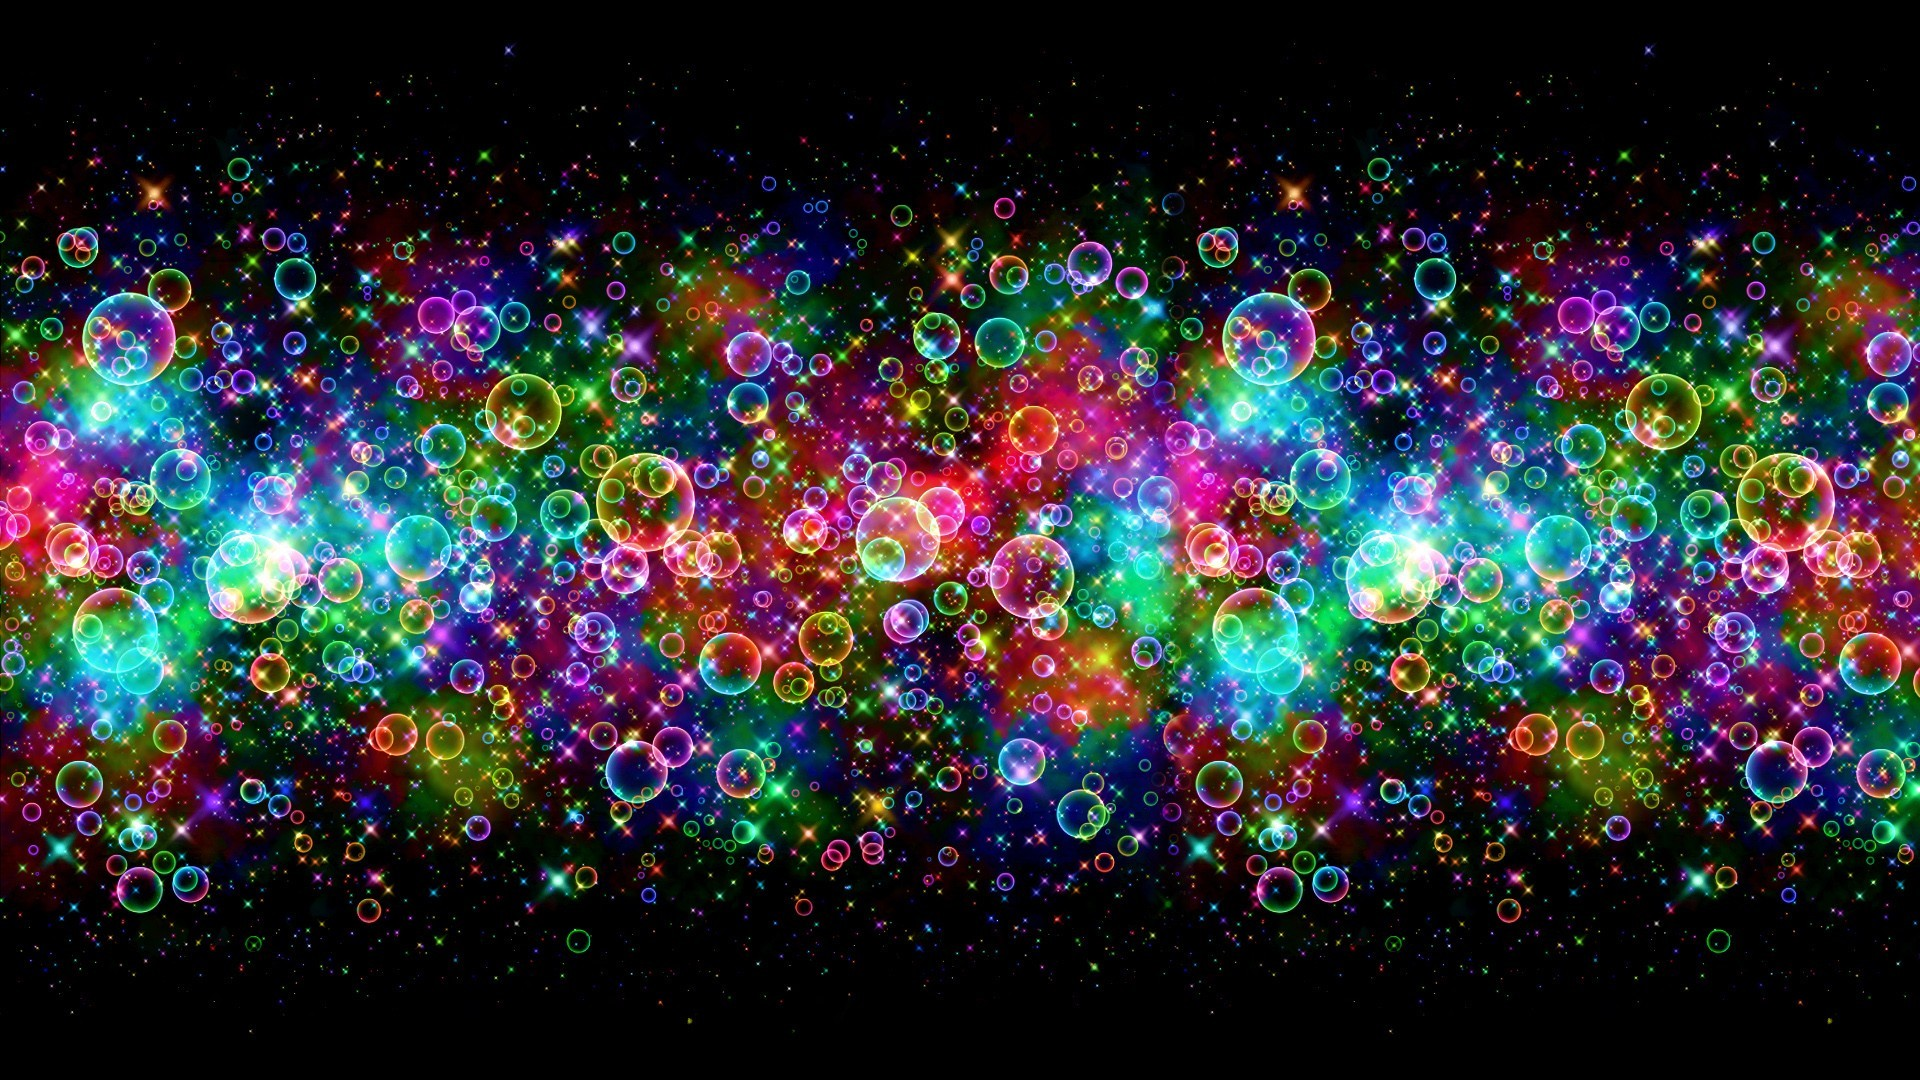 Abstract Wallpapers And Screensavers 56 Images